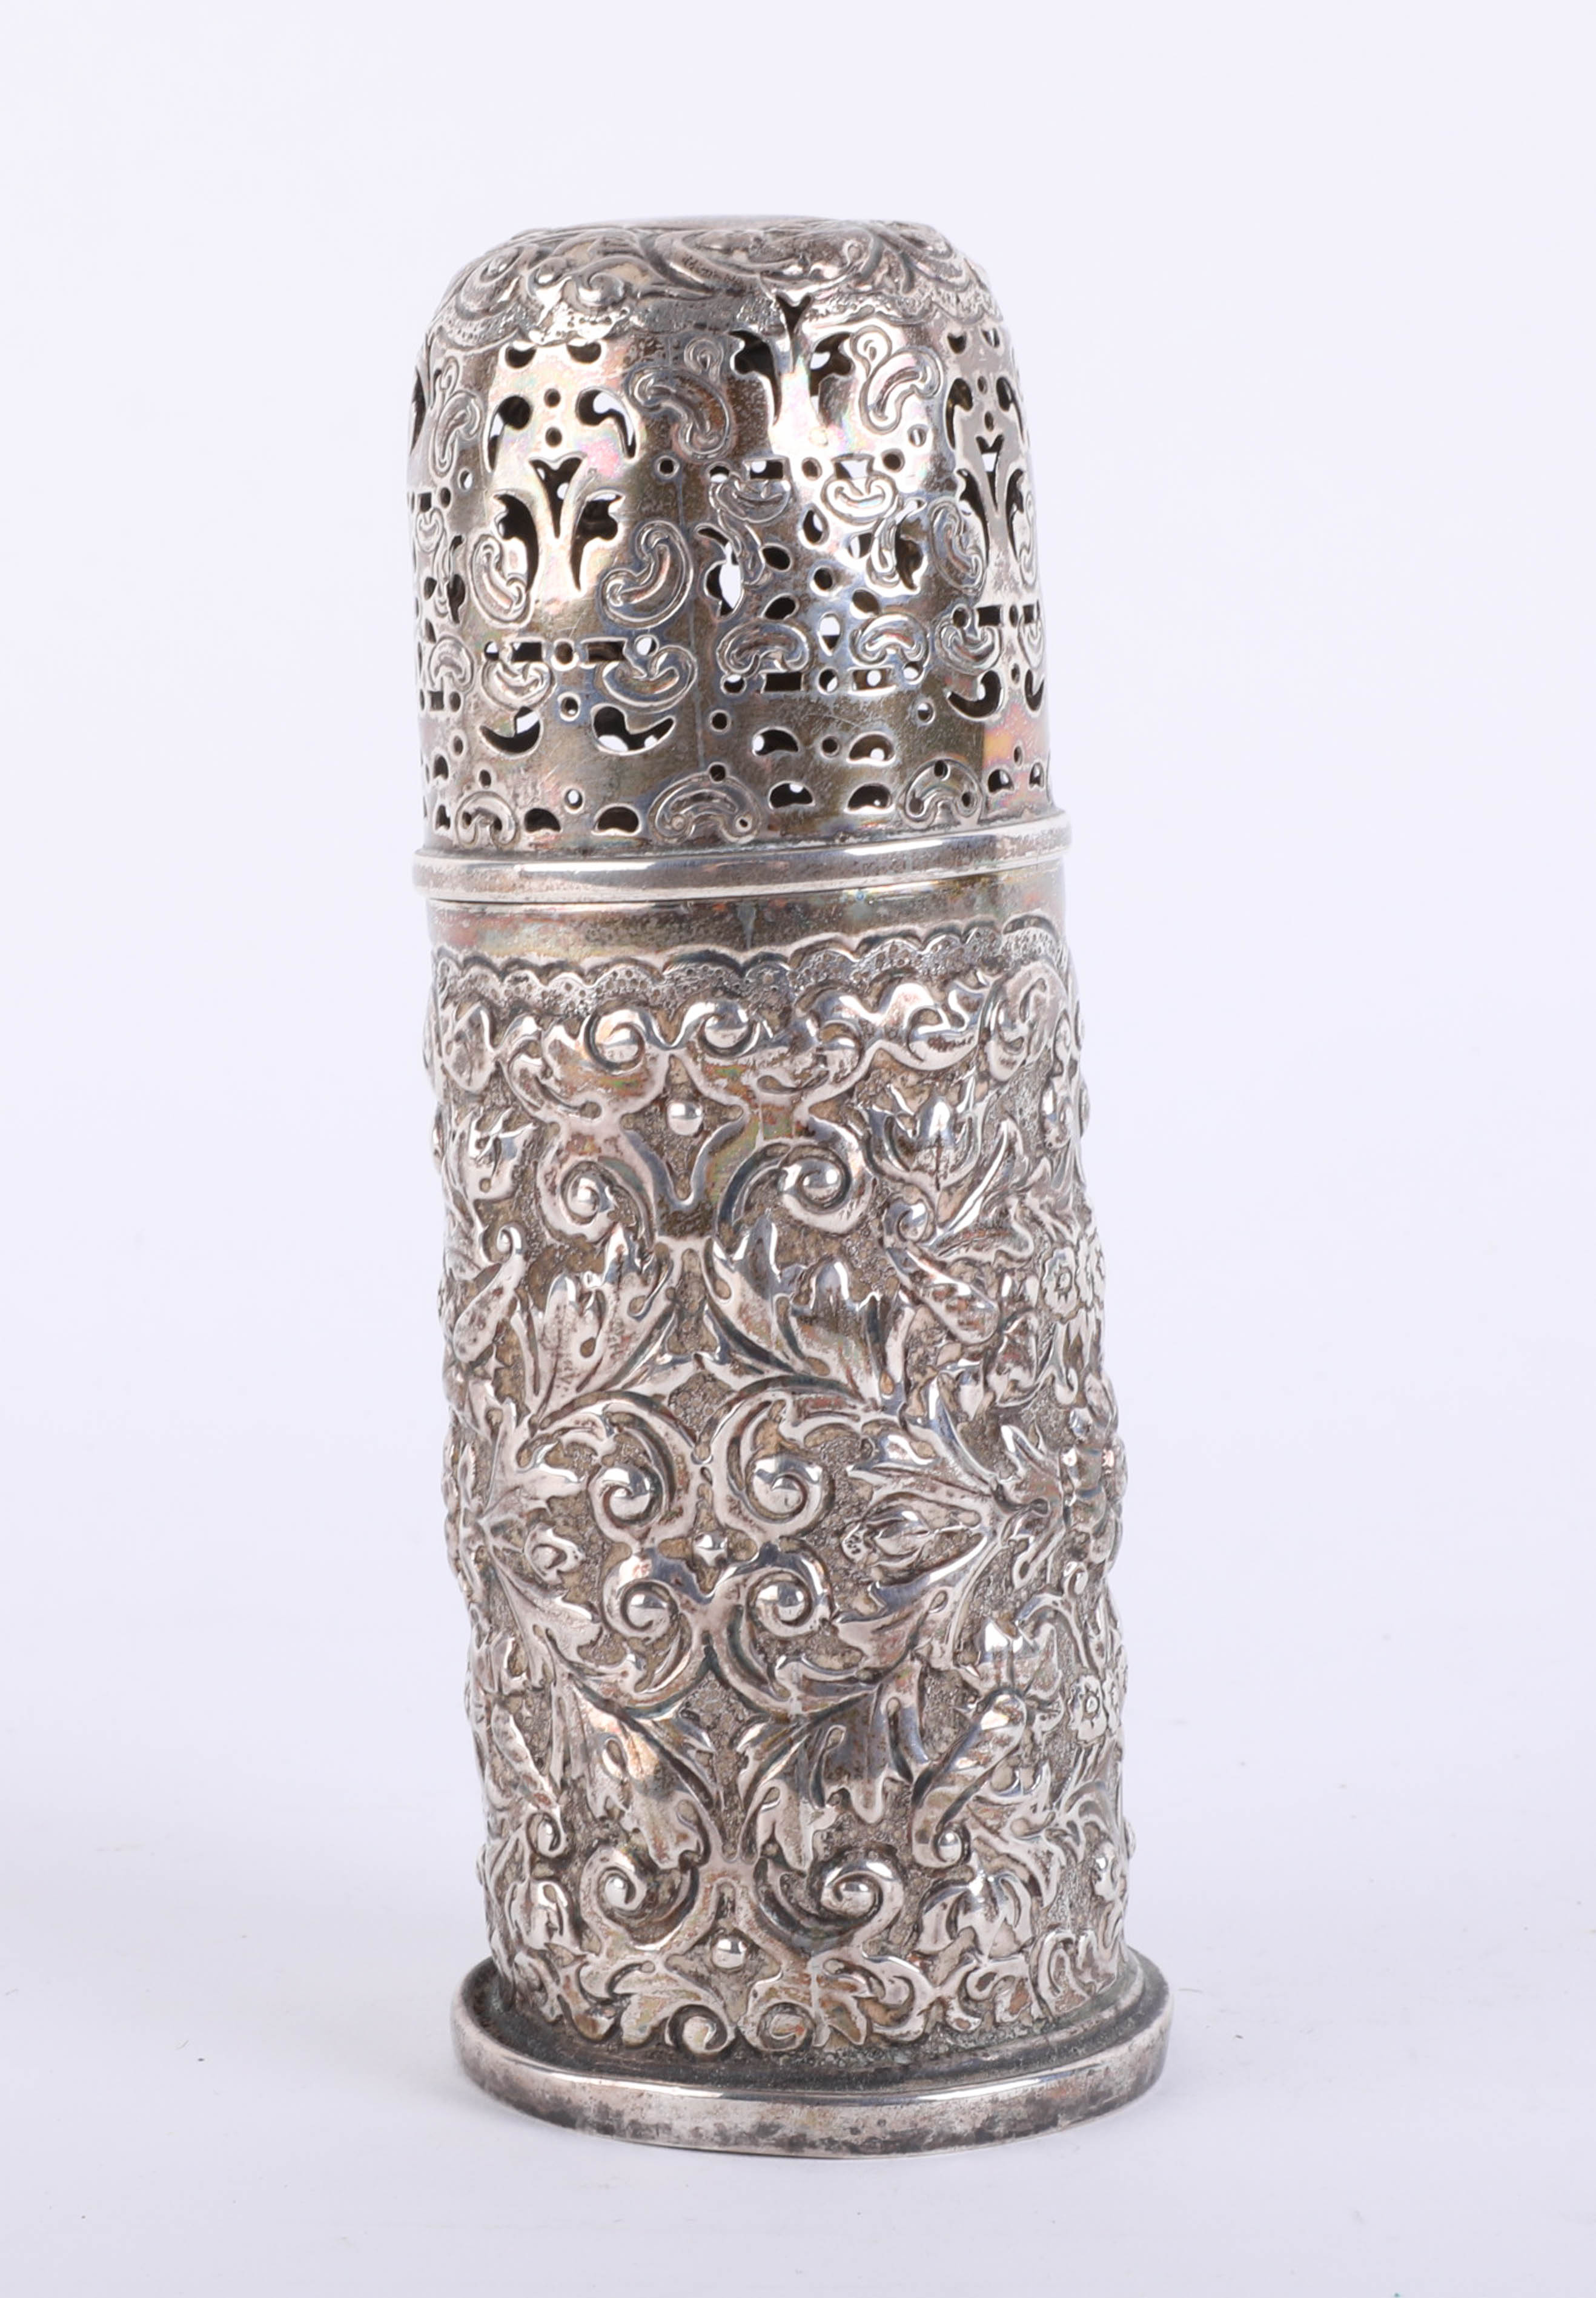 Lot 008 - An antique silver sugar caster with pierced fancy